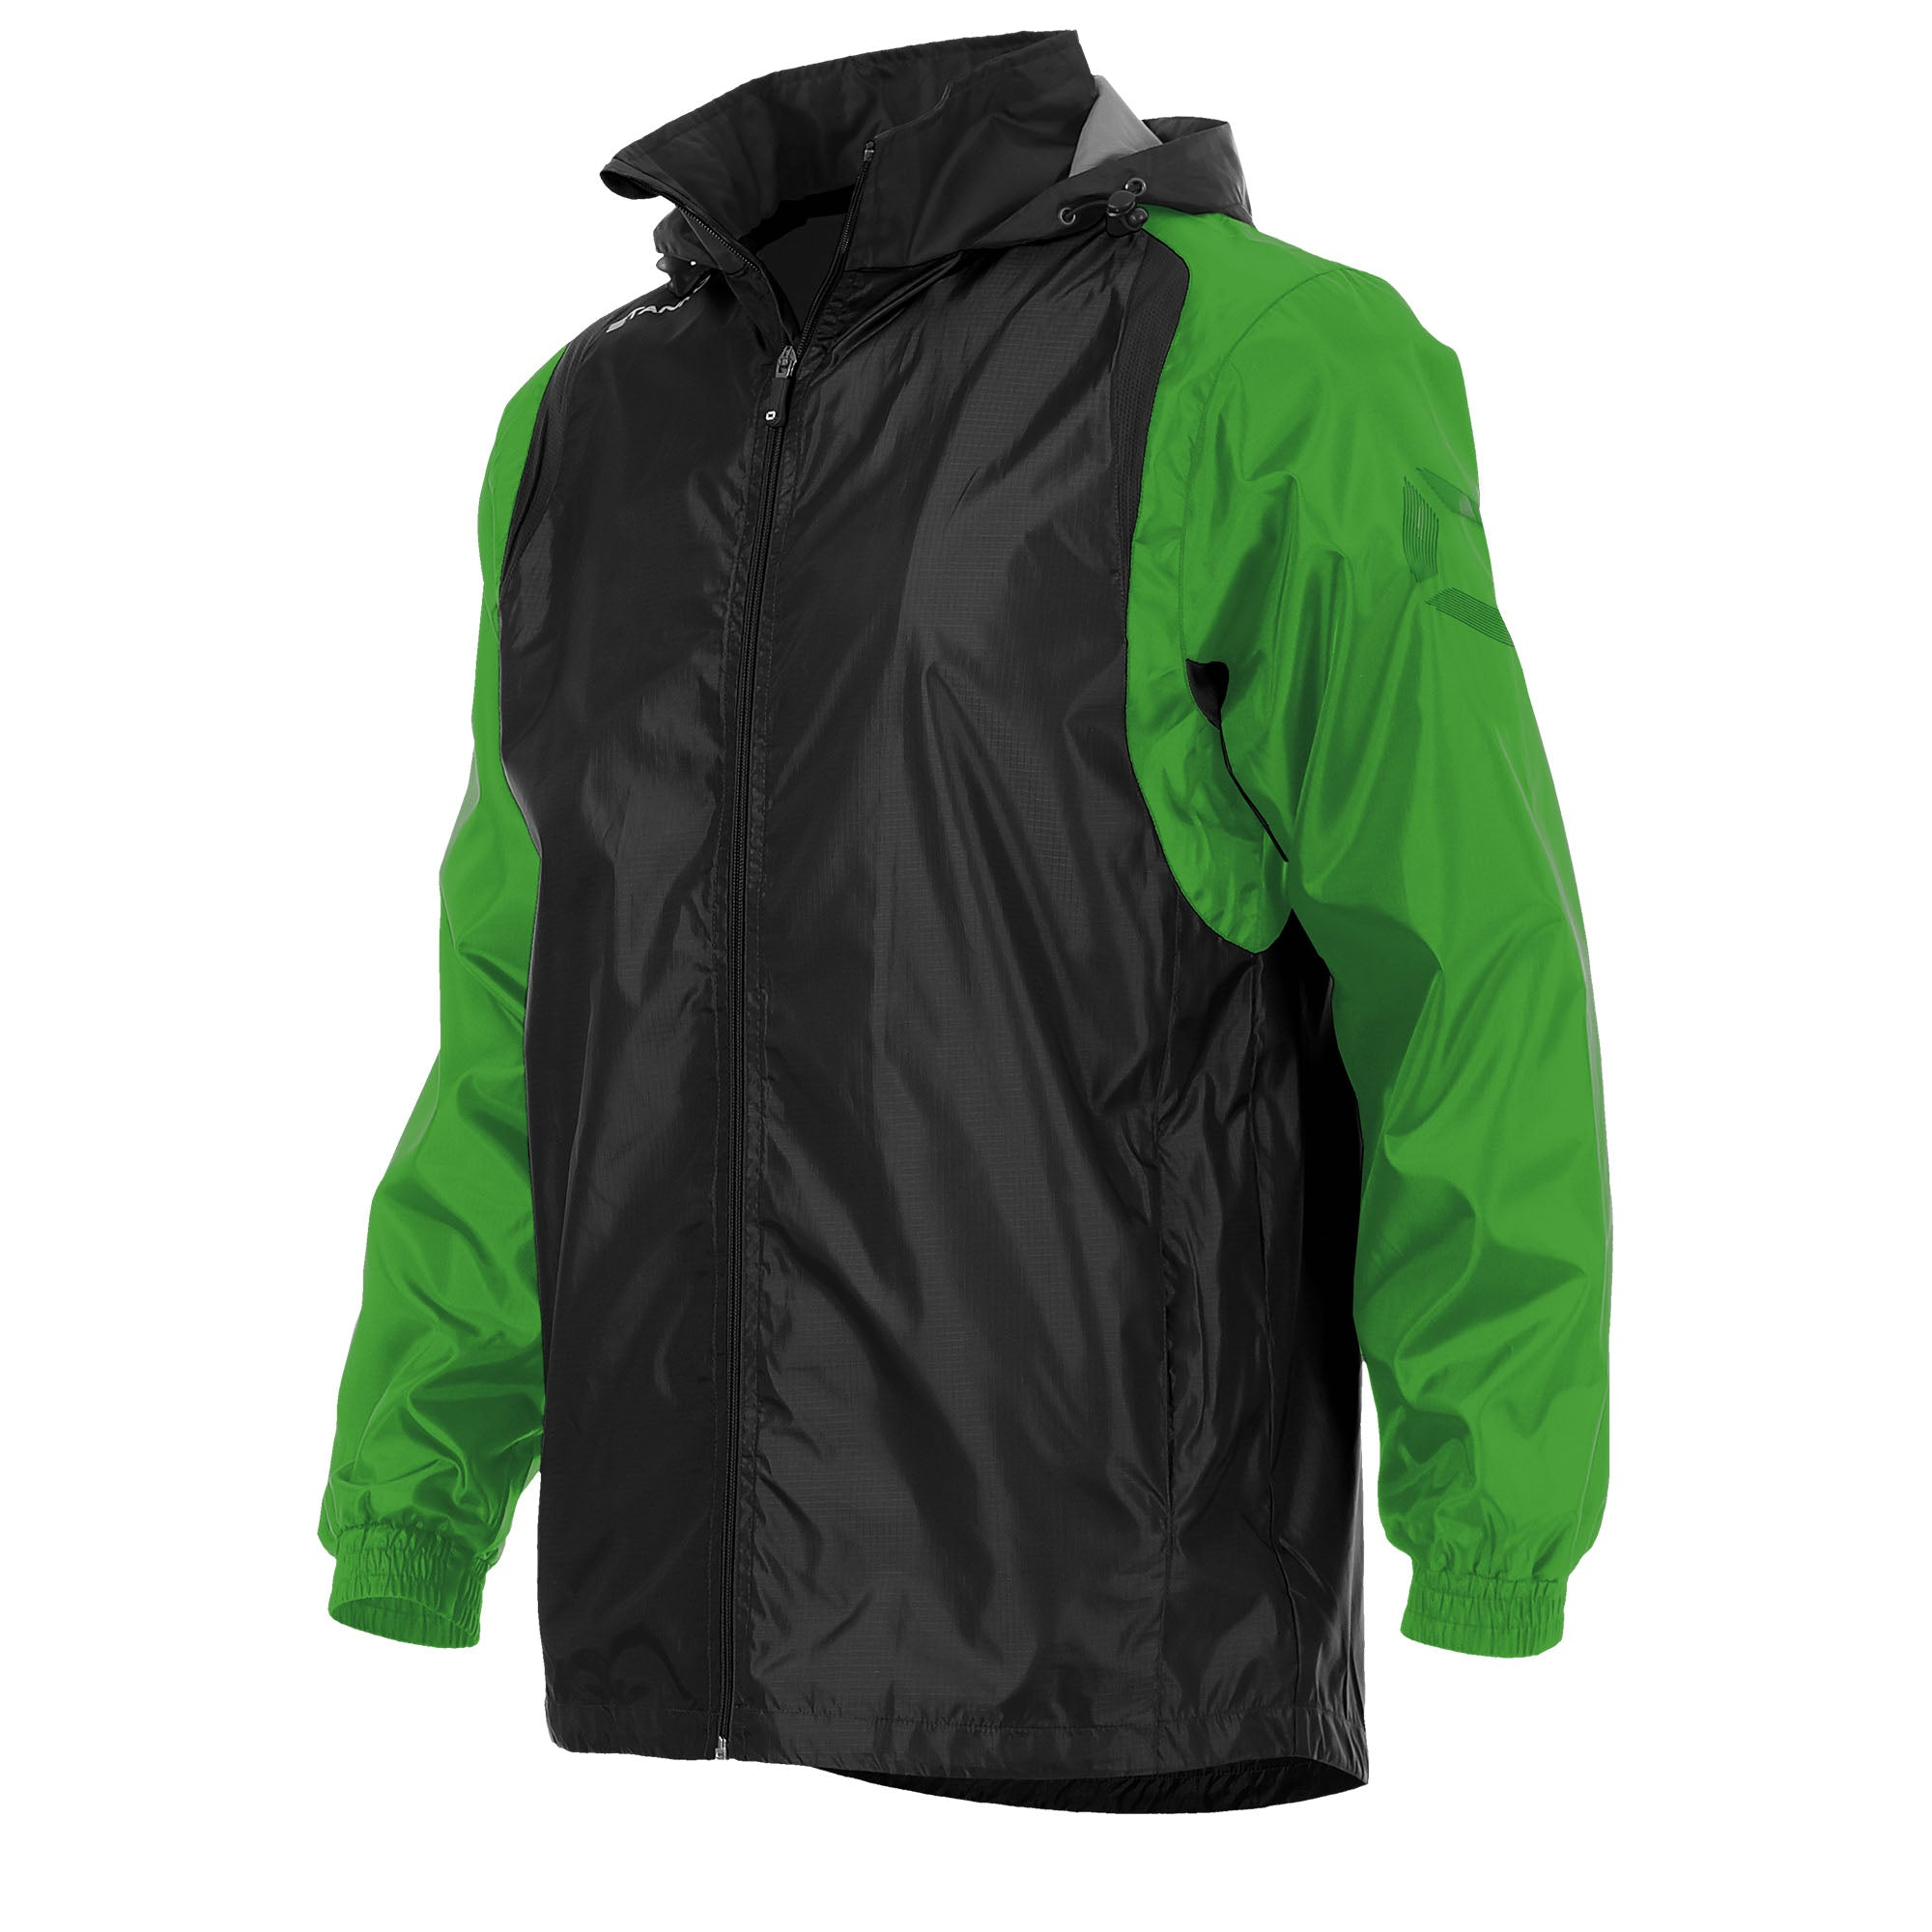 Front of Stanno Centro windbreaker in black with bright green contrast sleeve and Stanno printed logo